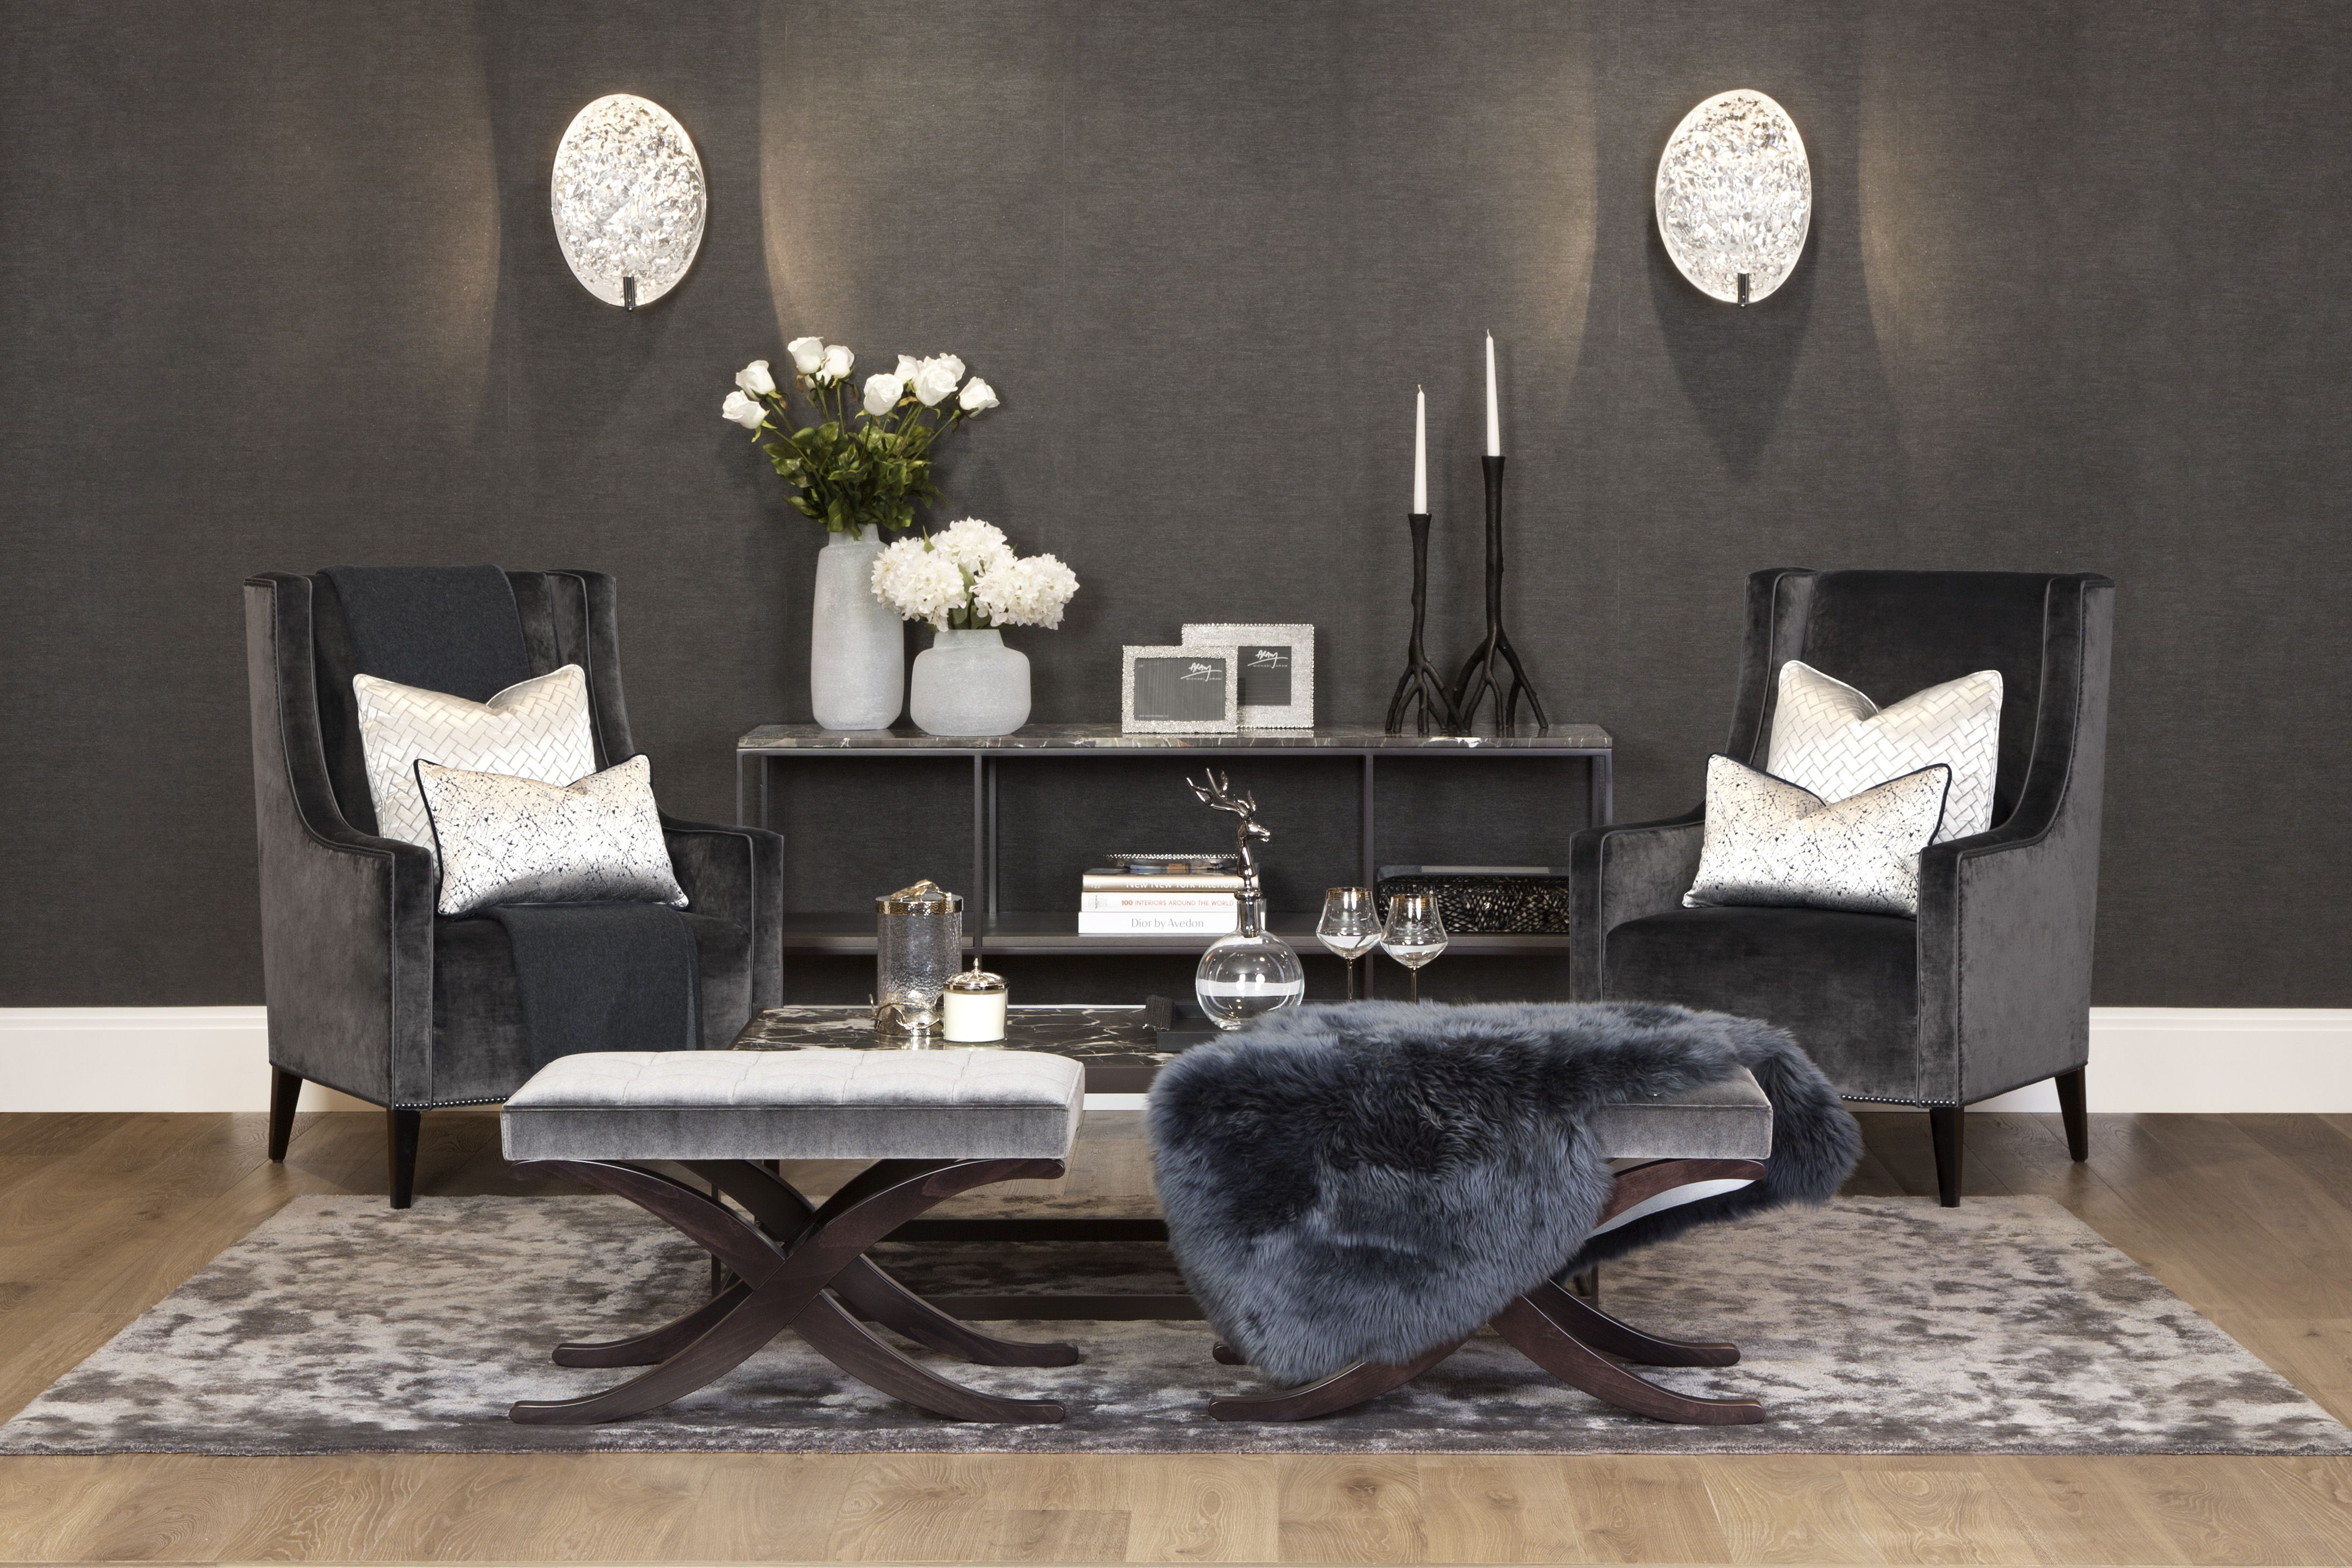 Sofa And Chair Company The Sofa Chair Company S C Our London Showroom In 2019